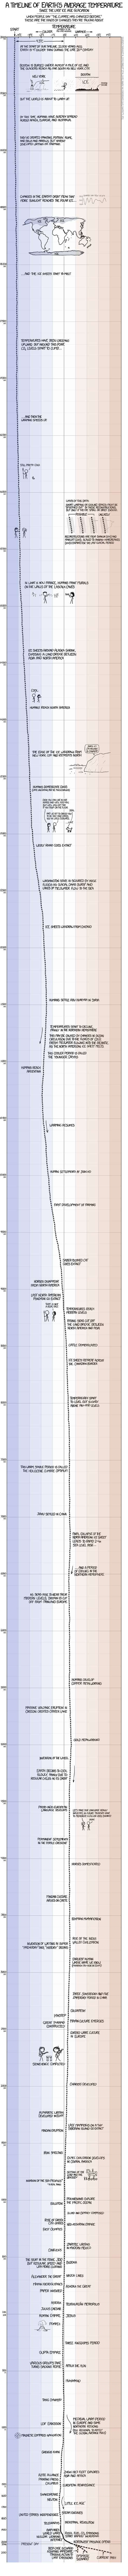 Diagram Showing the fluctuations over the past 22,000 years